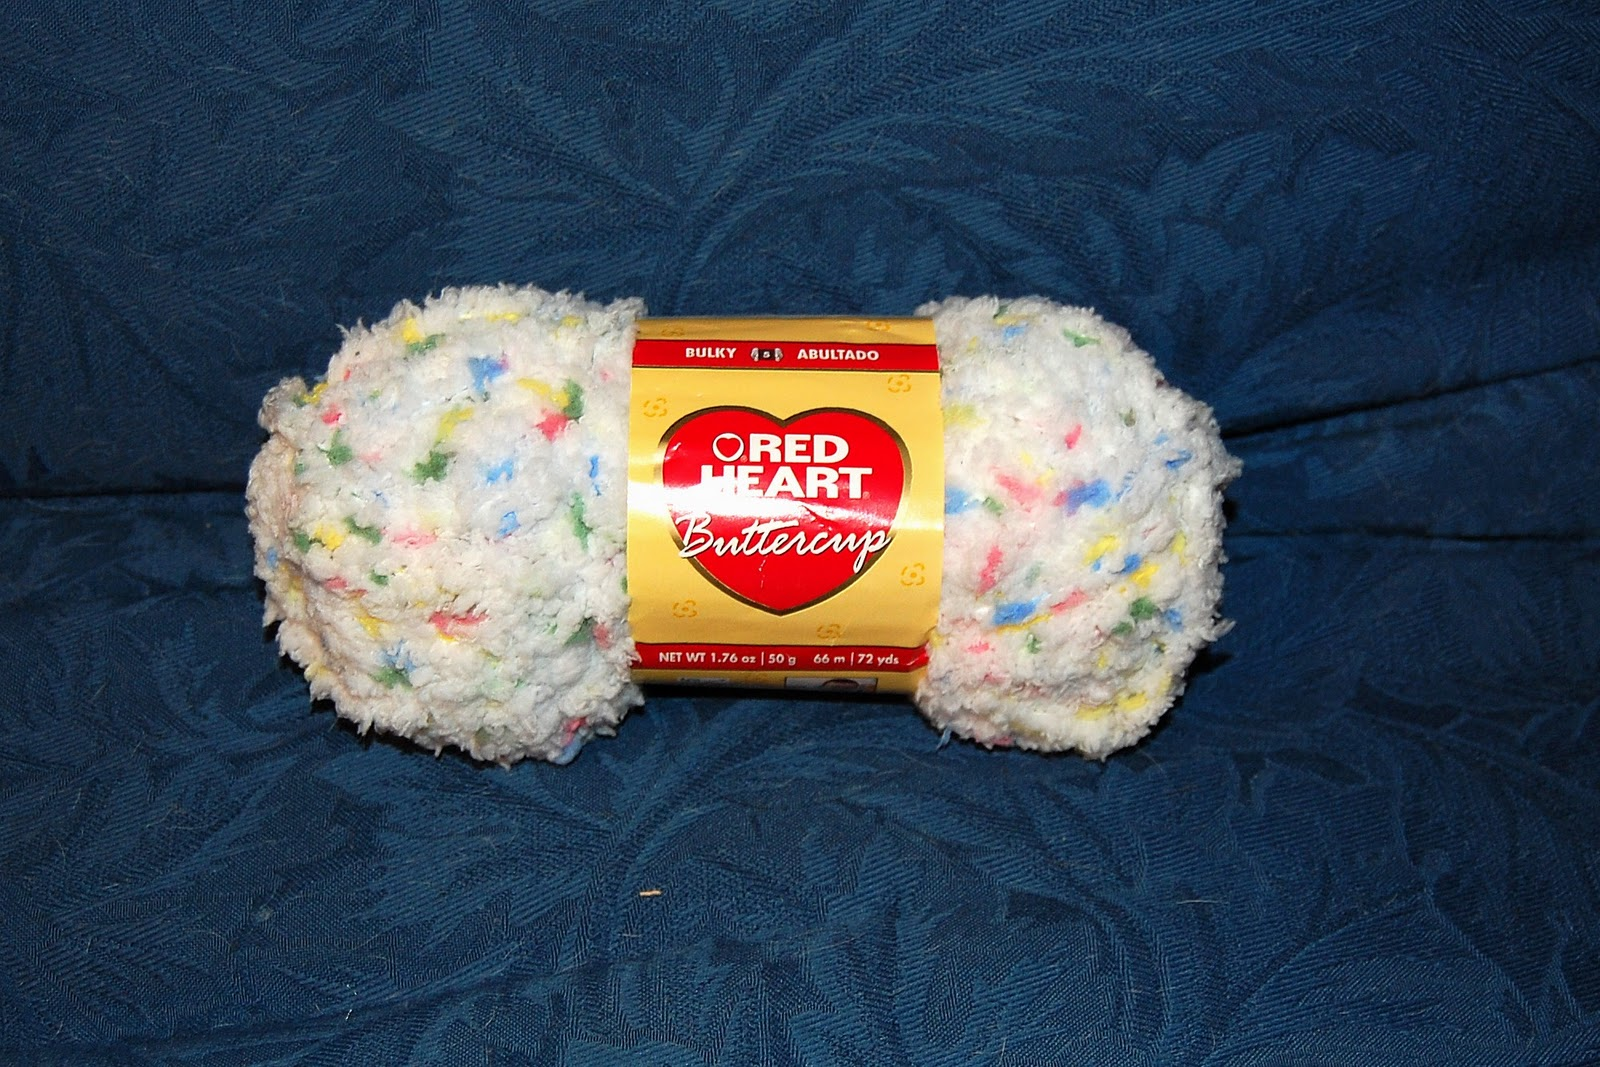 Knitting Patterns For Red Heart Buttercup Yarn : Posh Pooch Designs Dog Clothes: Buttercup Yarn